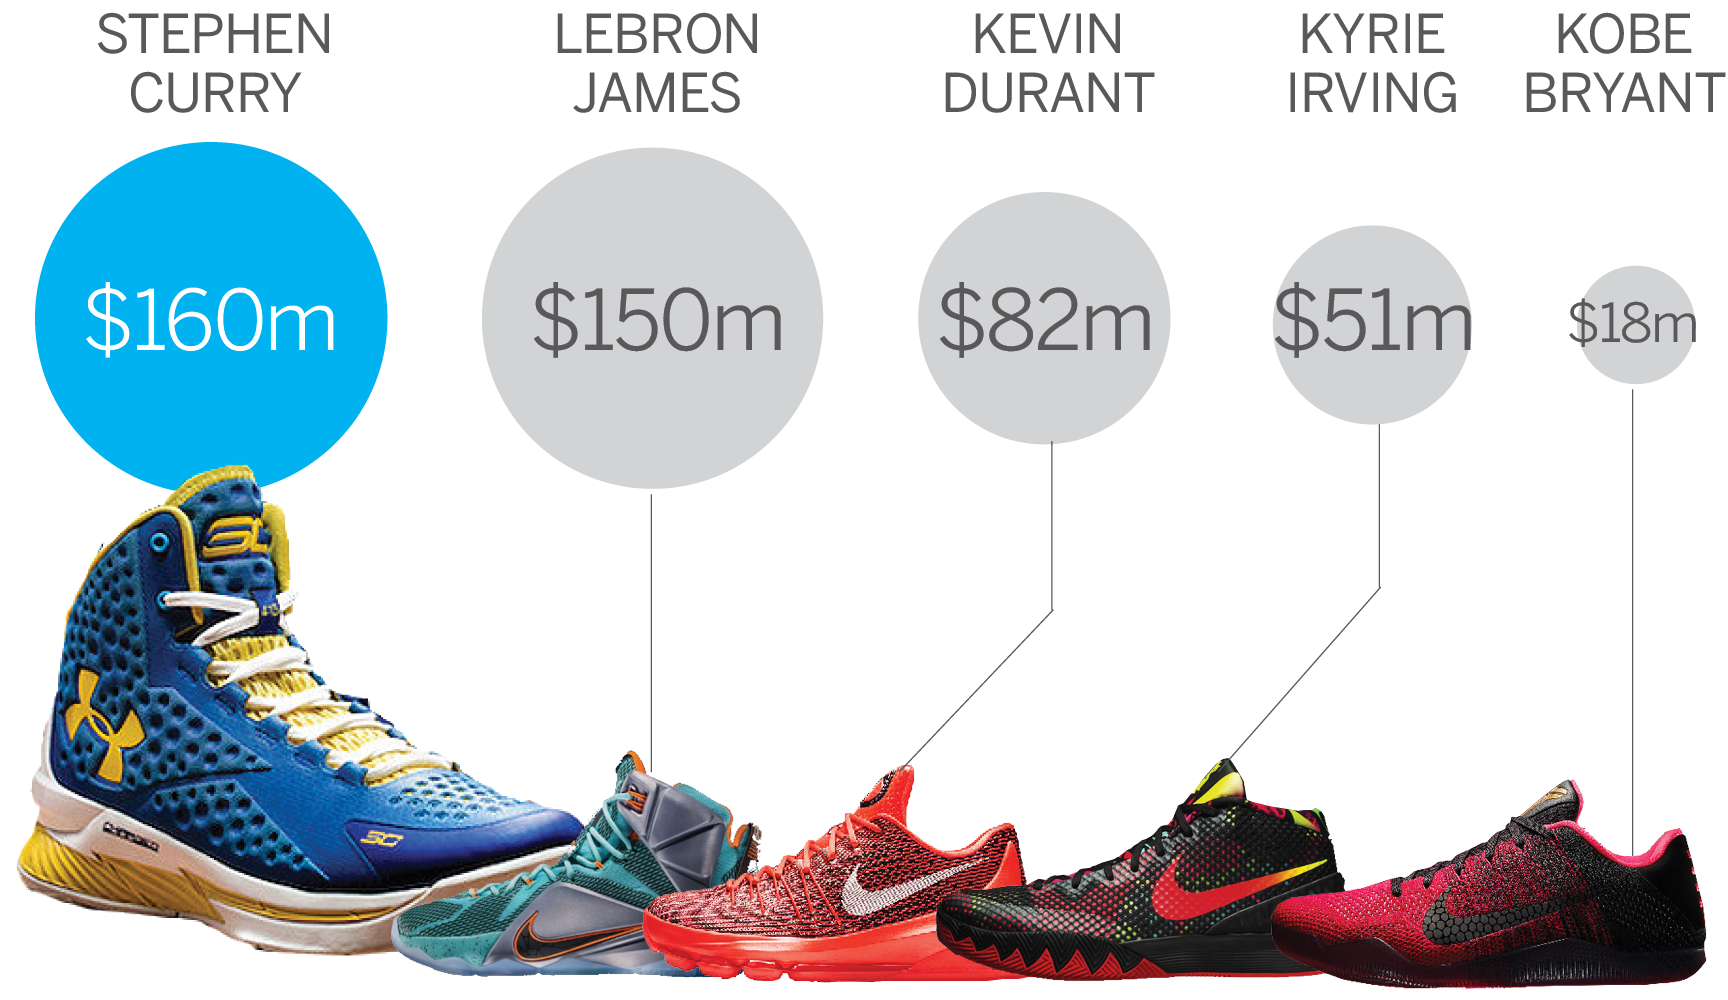 ... Curry should pass LeBron as the top seller of signature shoes this  year, according to Morgan Stanley. And he\u0027s on pace to sell more than Kevin  Durant, ...